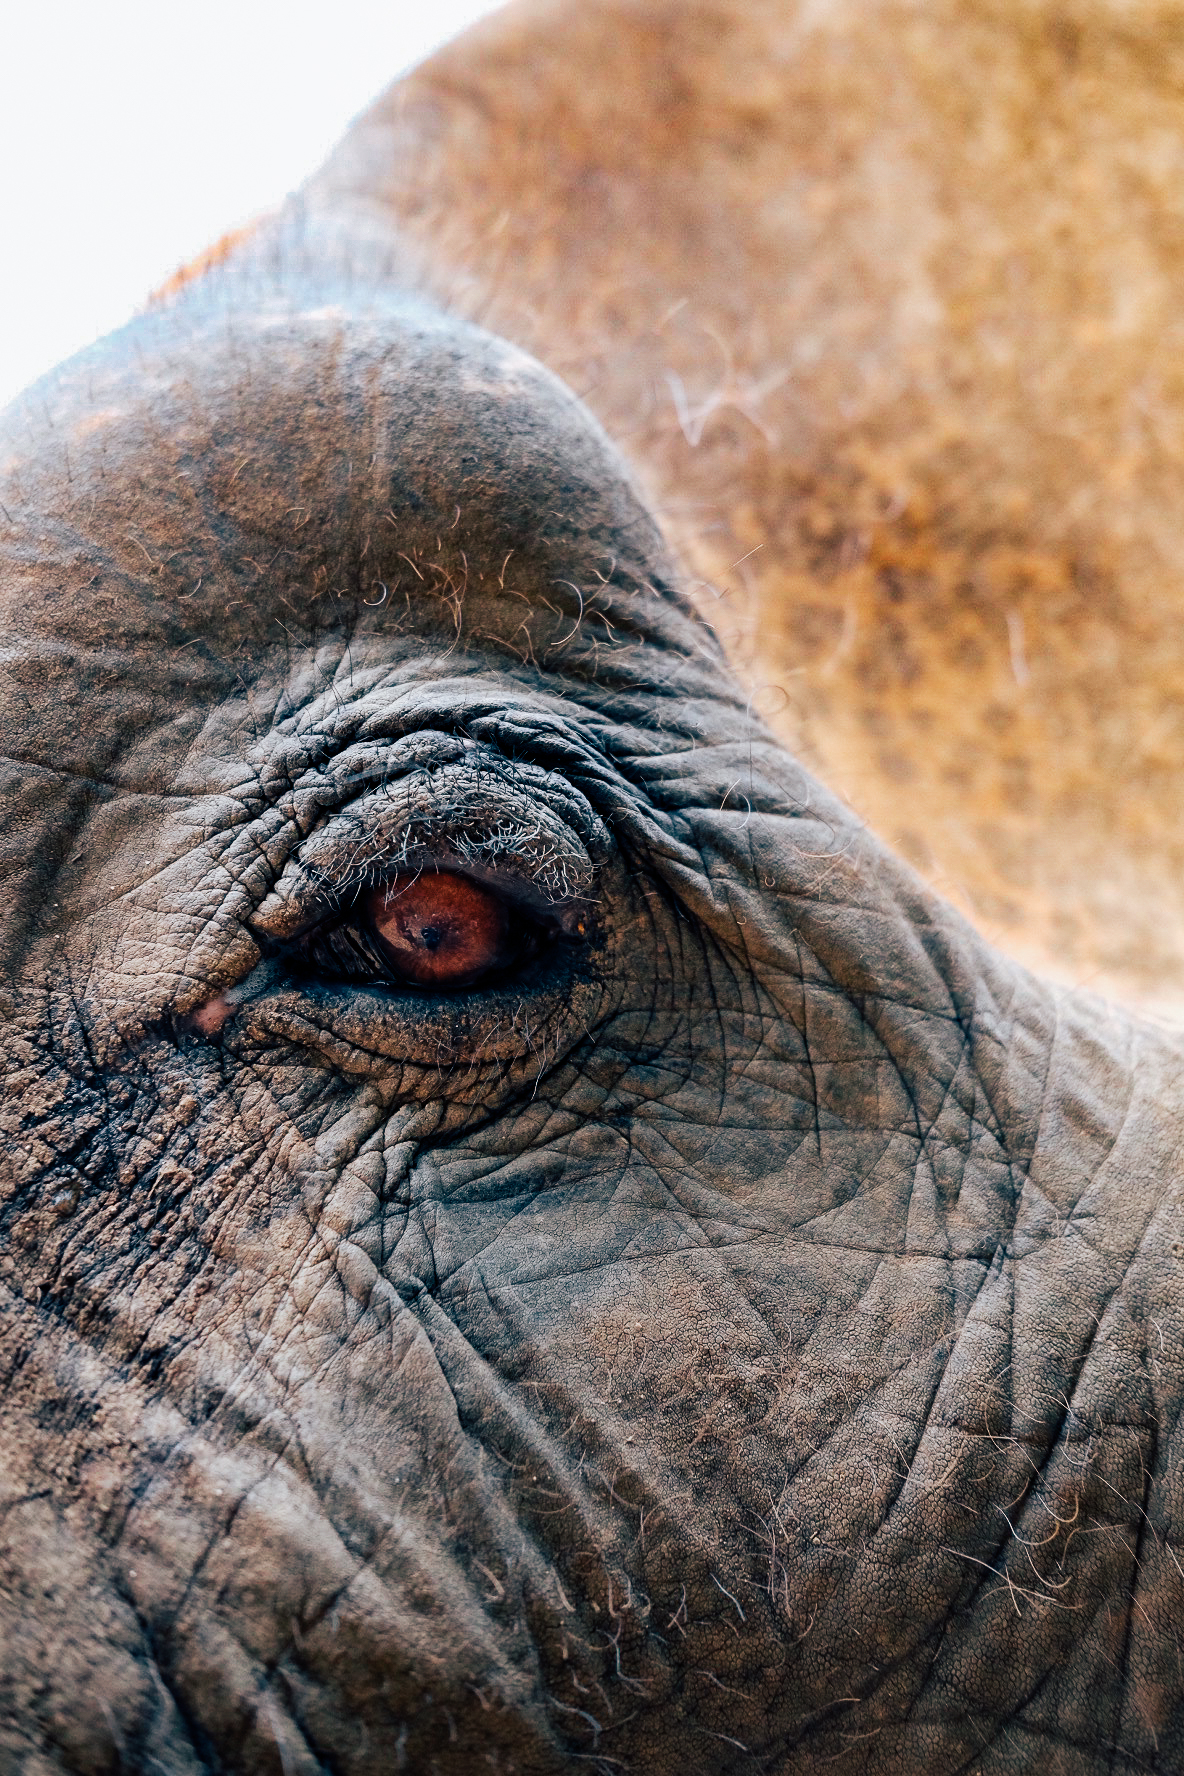 An elephant at The Elephant Nature Park in Chiang Mai